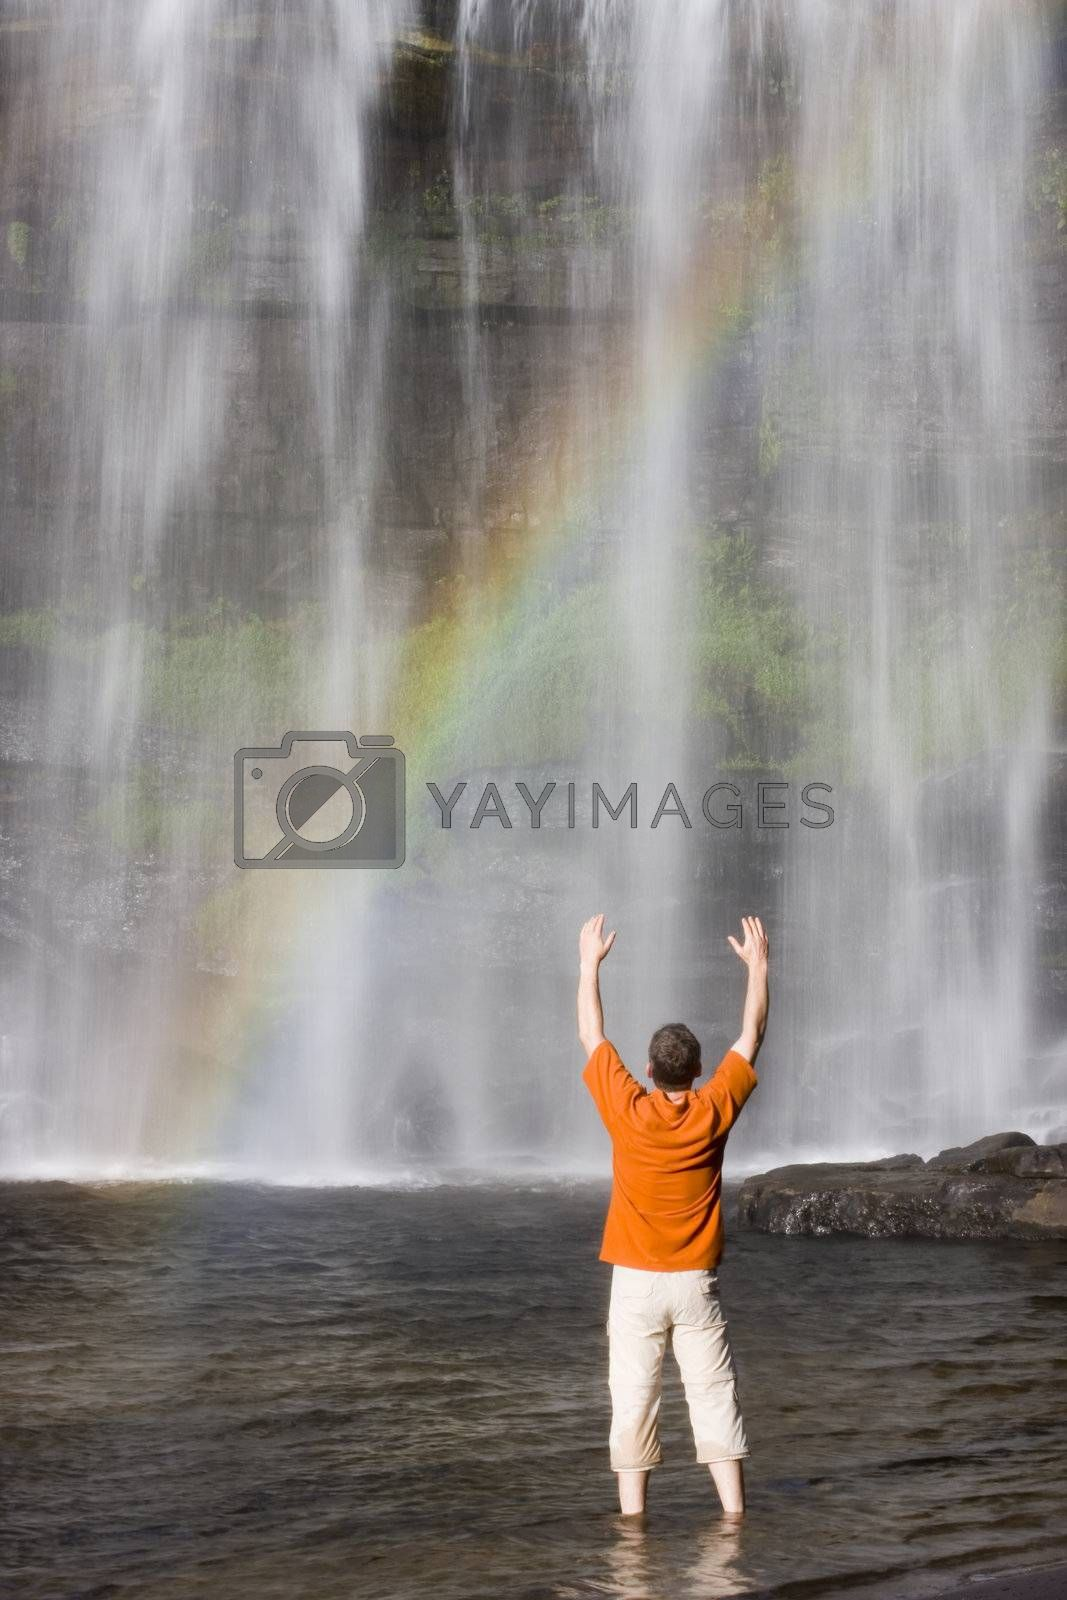 Man with uplifted arms standing in the water in front of a tropical waterfall with rainbow - Brazil